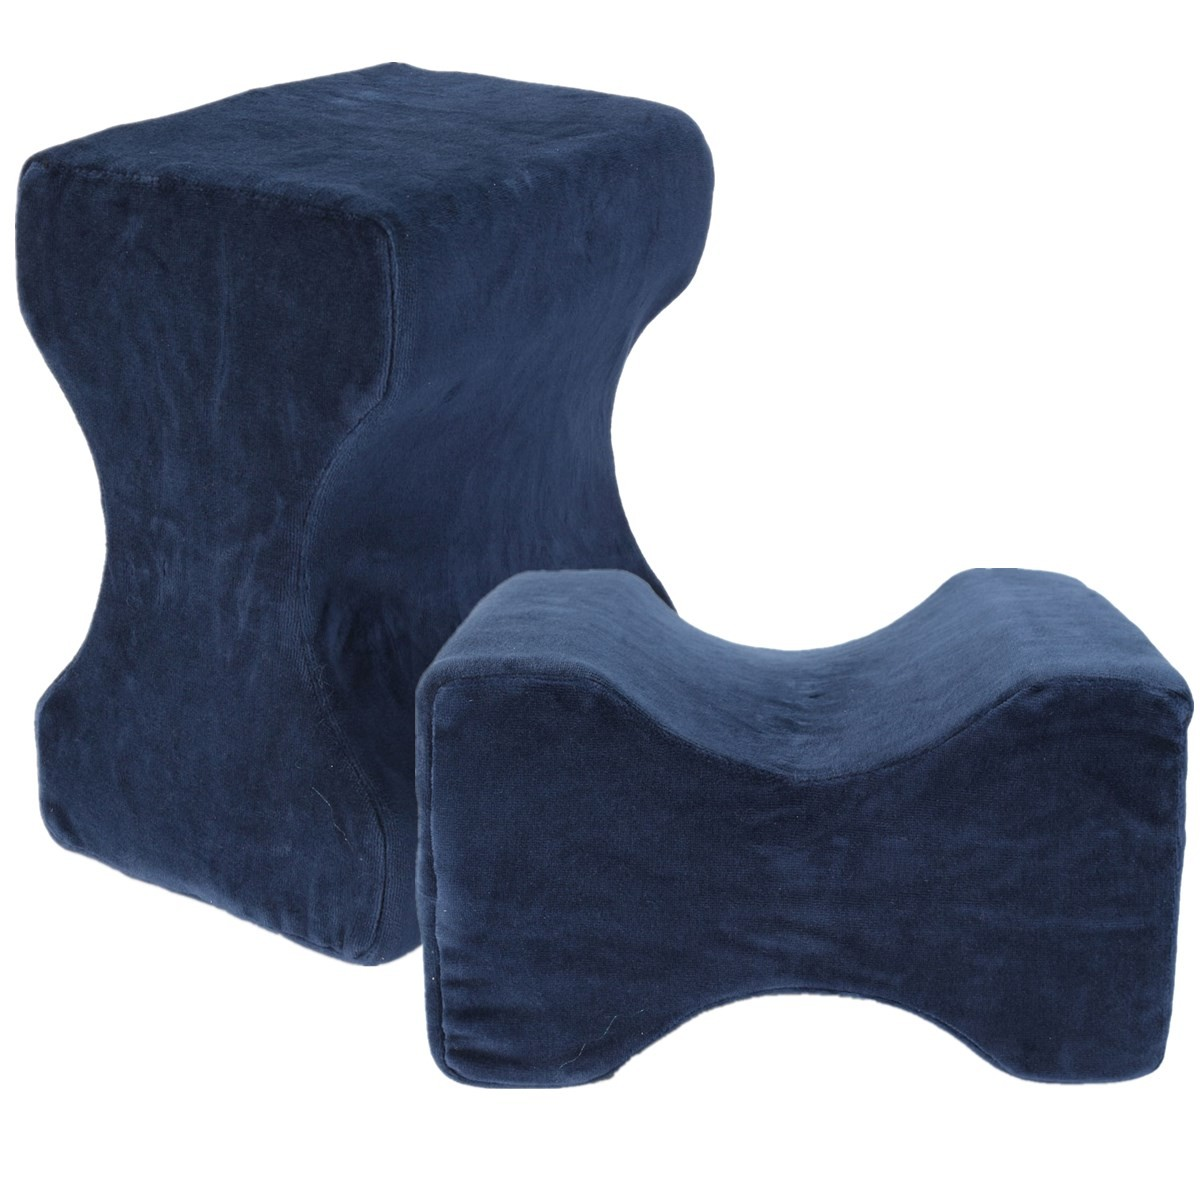 Foot Wedge Pillow 28 Images Lime Orthopaedic Contour